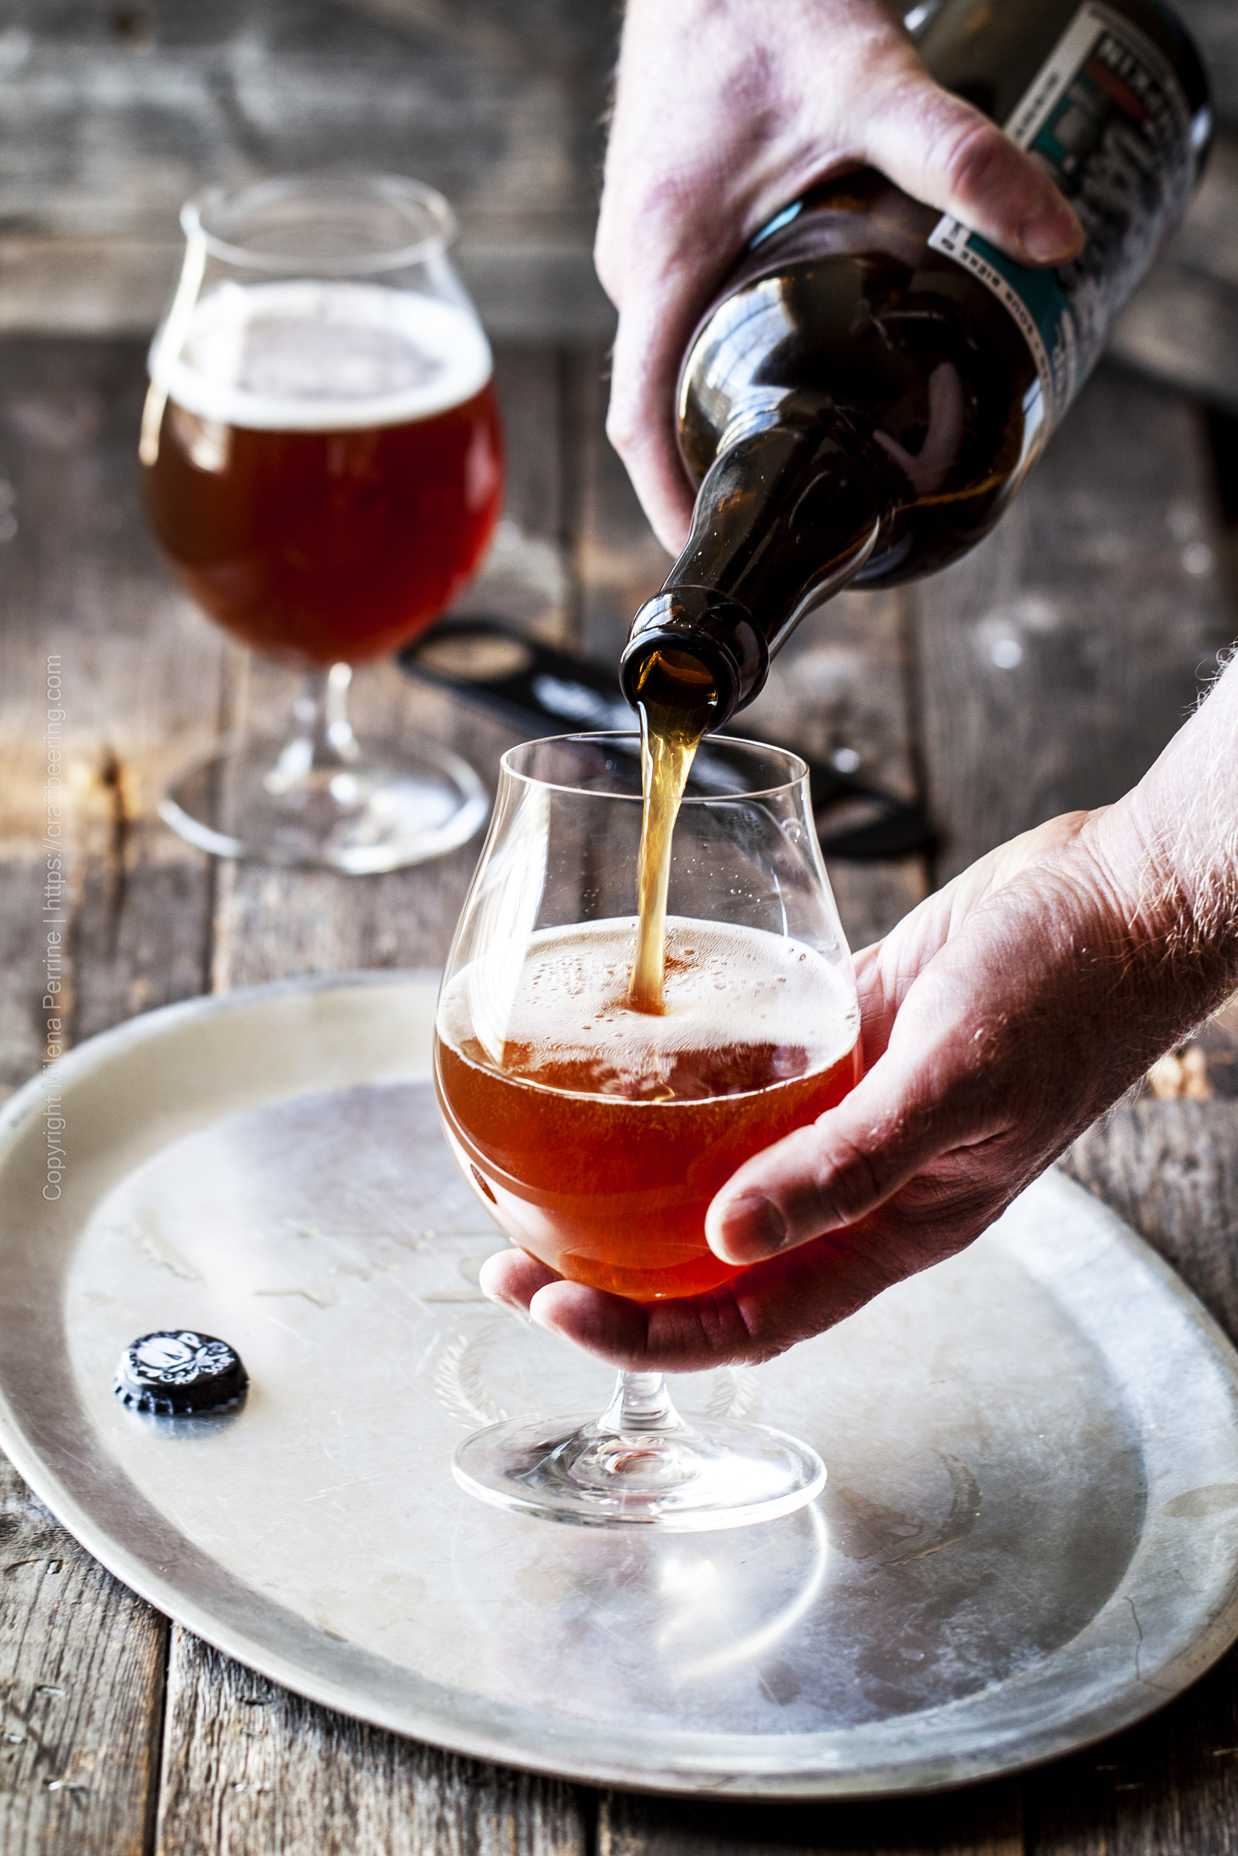 A unique, limited edition wild ale in the Flanders style from the Rare Beer Club being poured into a glass.